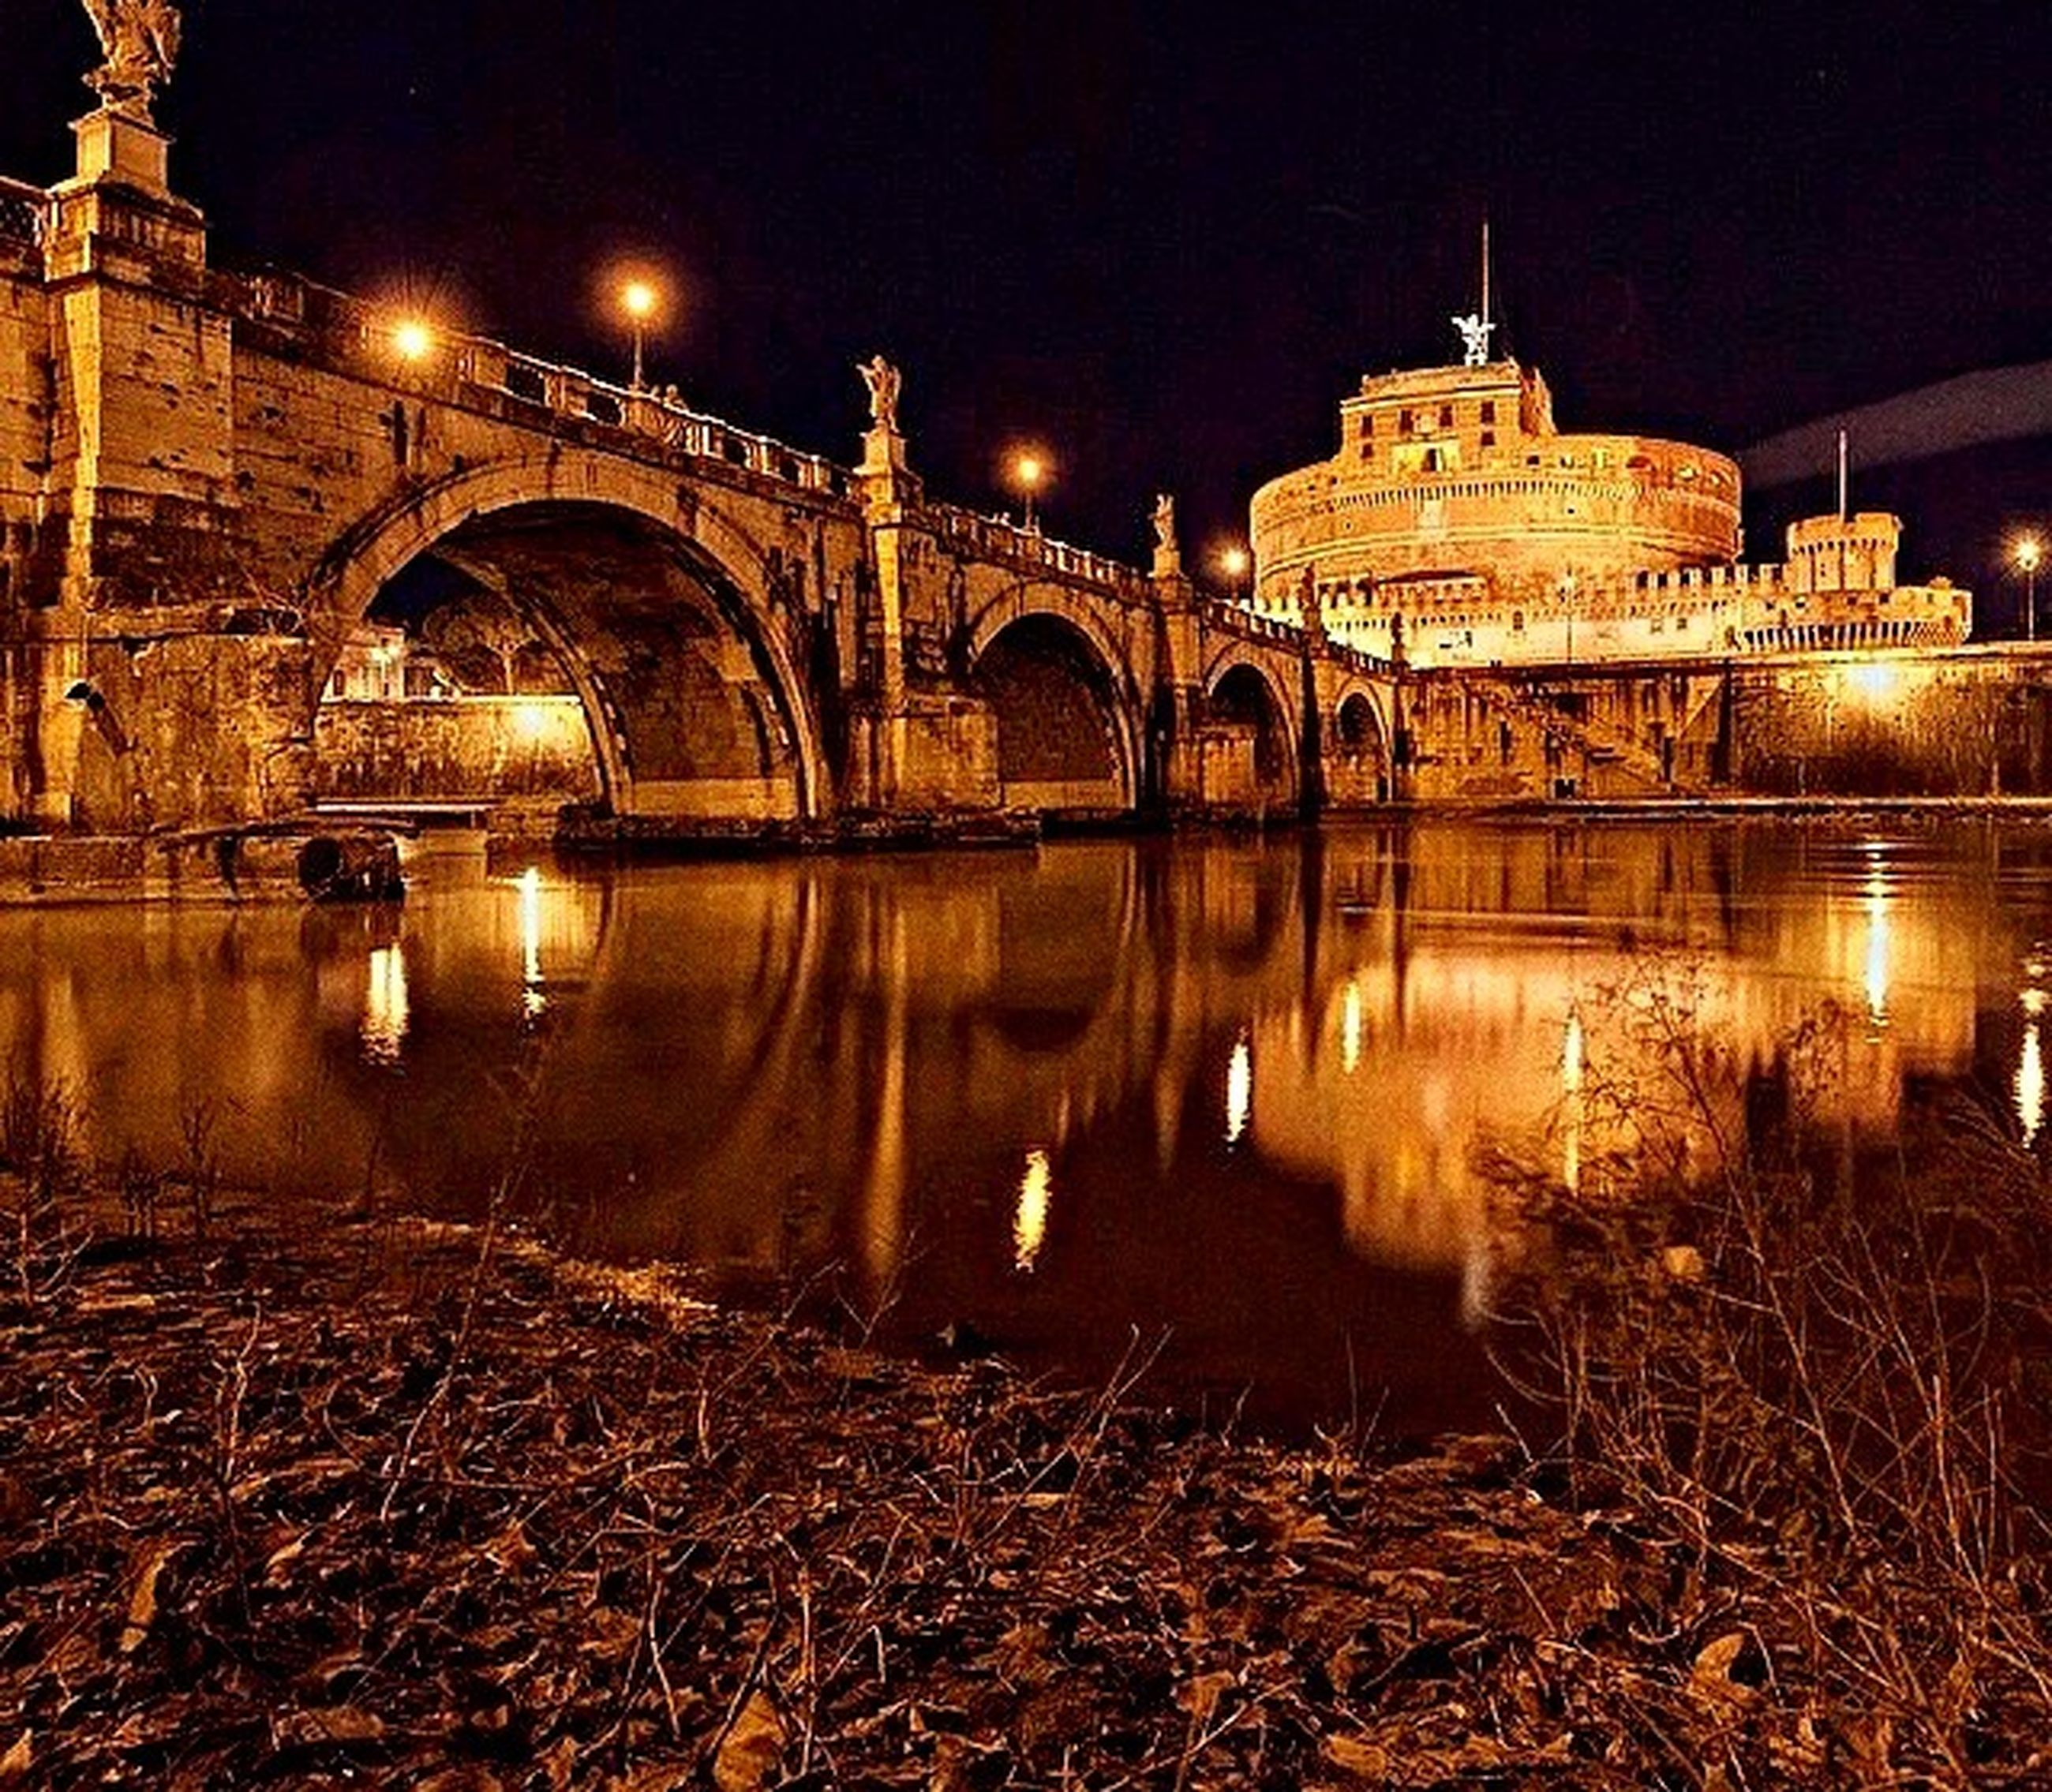 architecture, built structure, connection, illuminated, night, bridge - man made structure, water, river, reflection, arch bridge, arch, engineering, bridge, building exterior, transportation, travel destinations, waterfront, city, famous place, travel